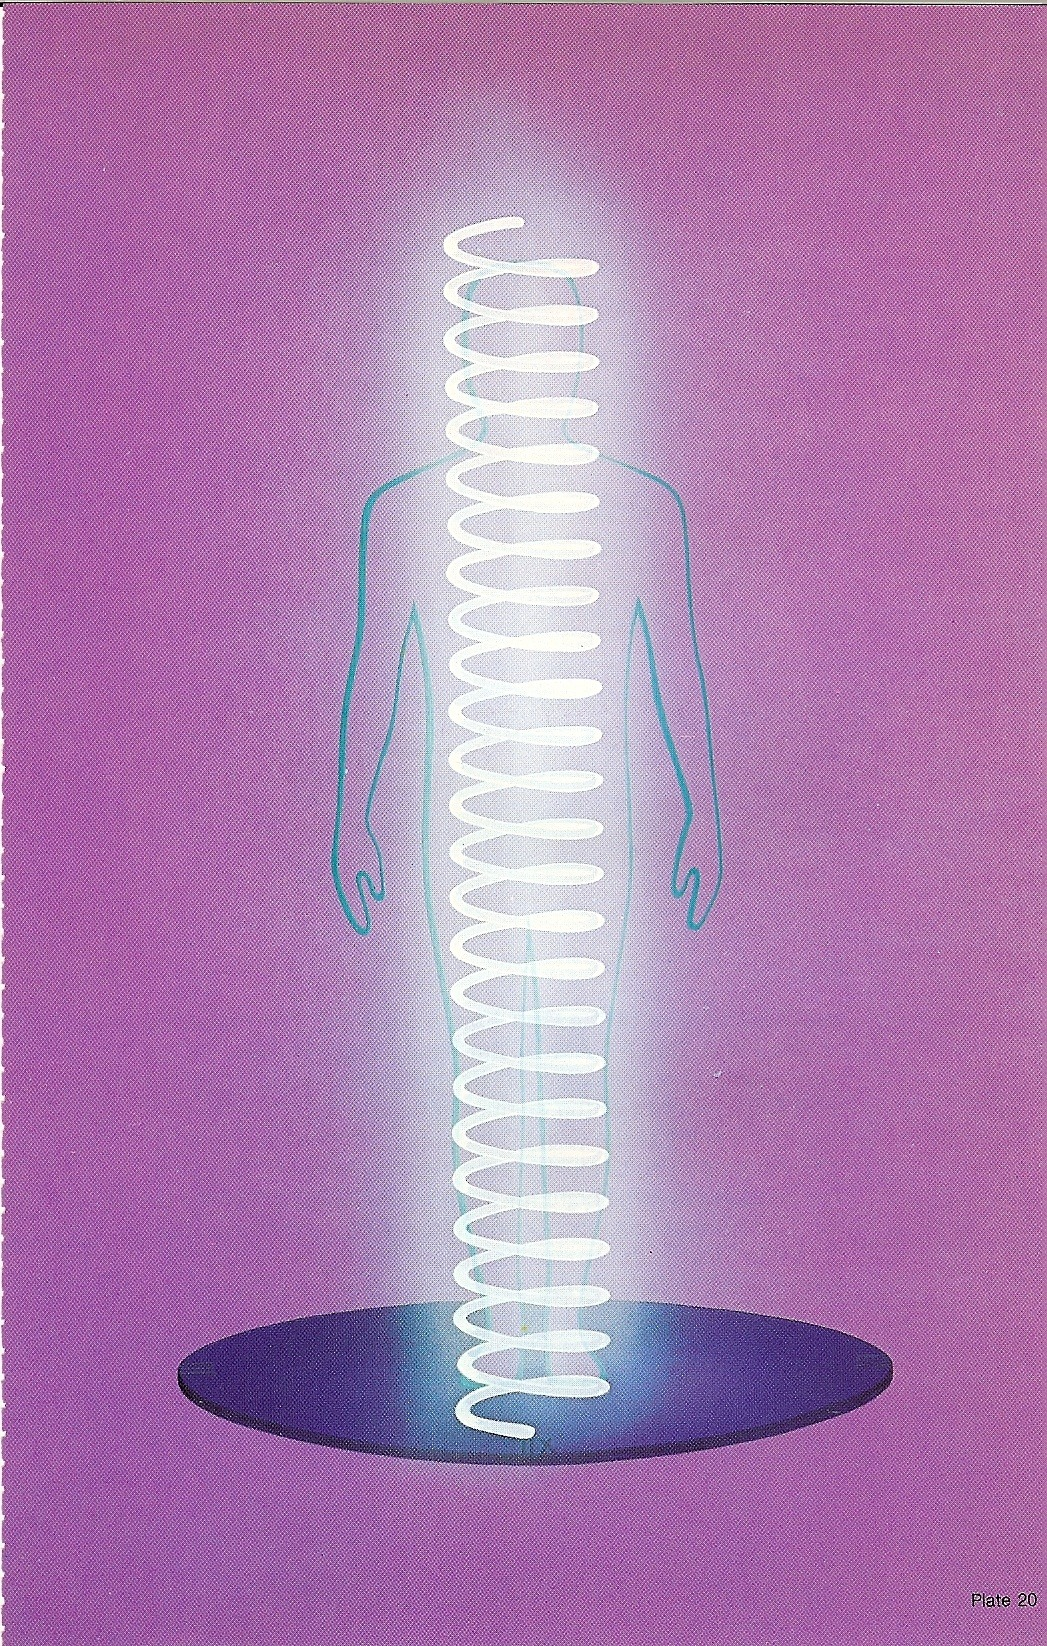 Using Fiery Coil of Energy Balancing Chakras